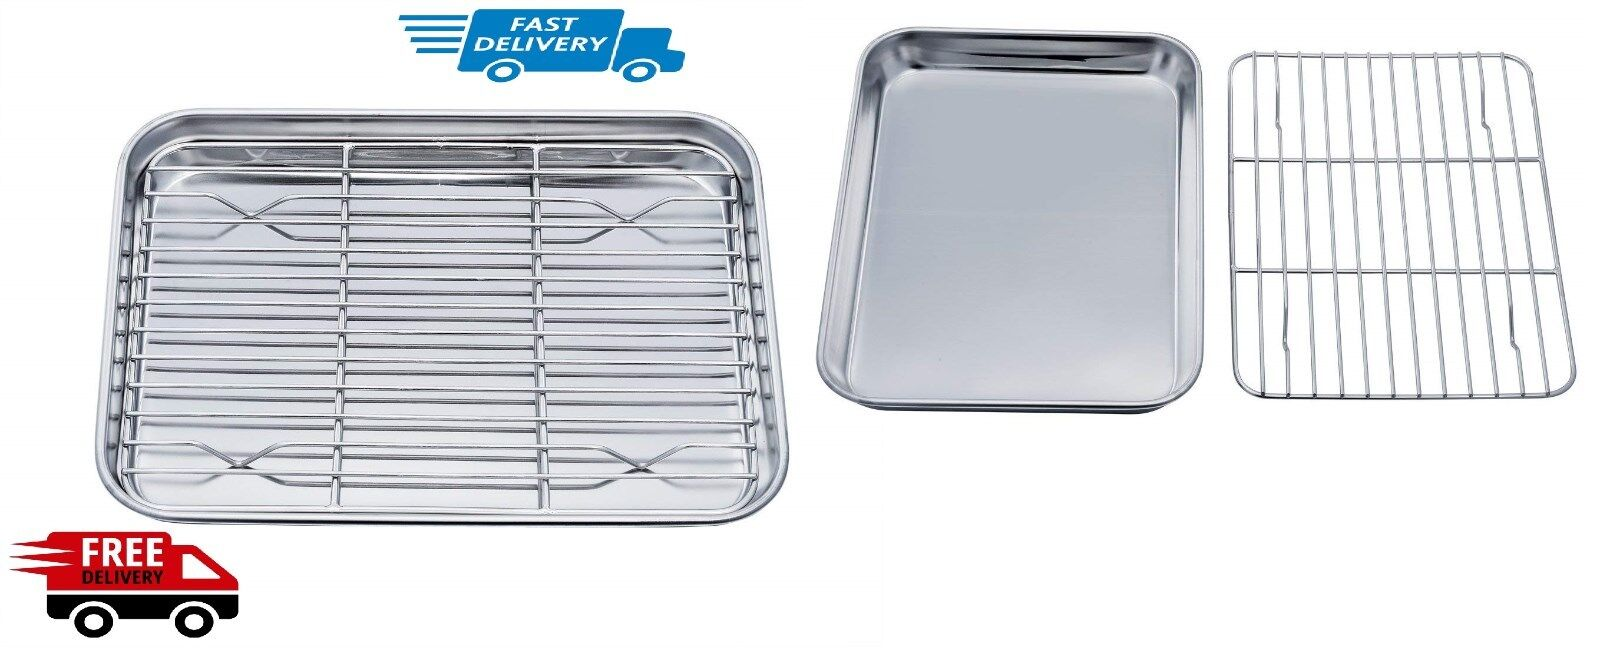 TeamFar Toaster Oven Pan Tray with Cooling Rack, Stainless S